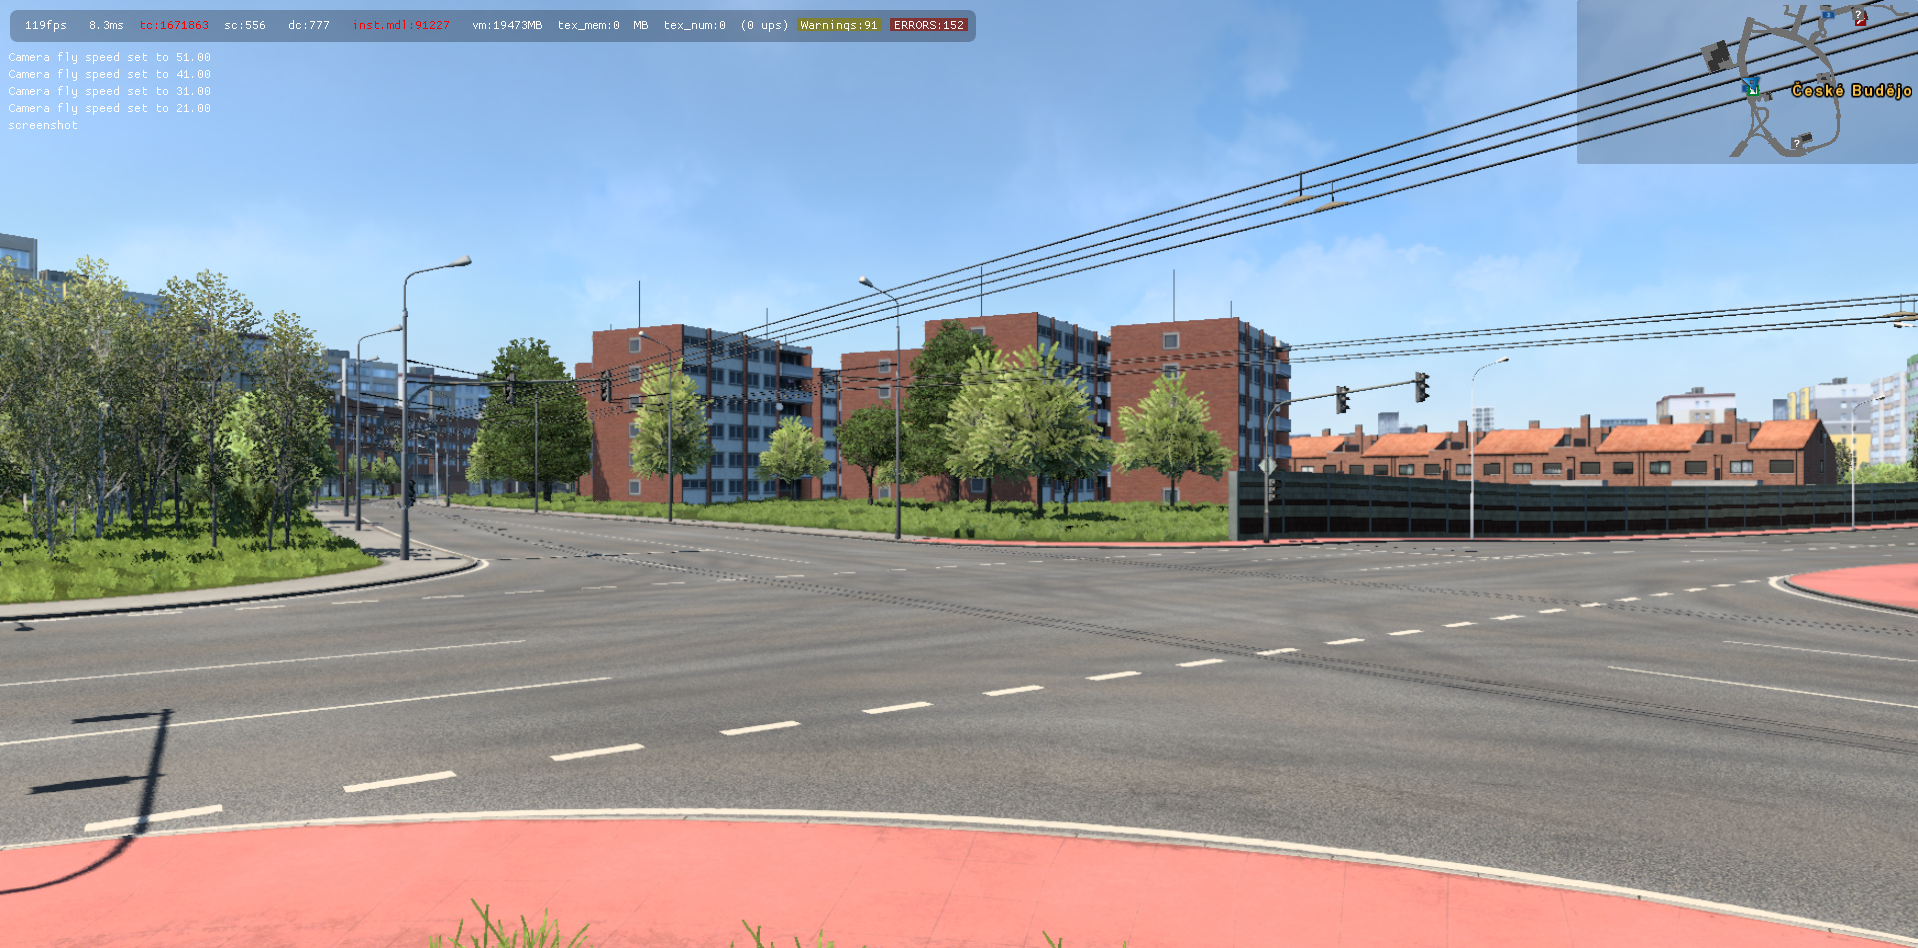 ets2_20210816_215321_00.png